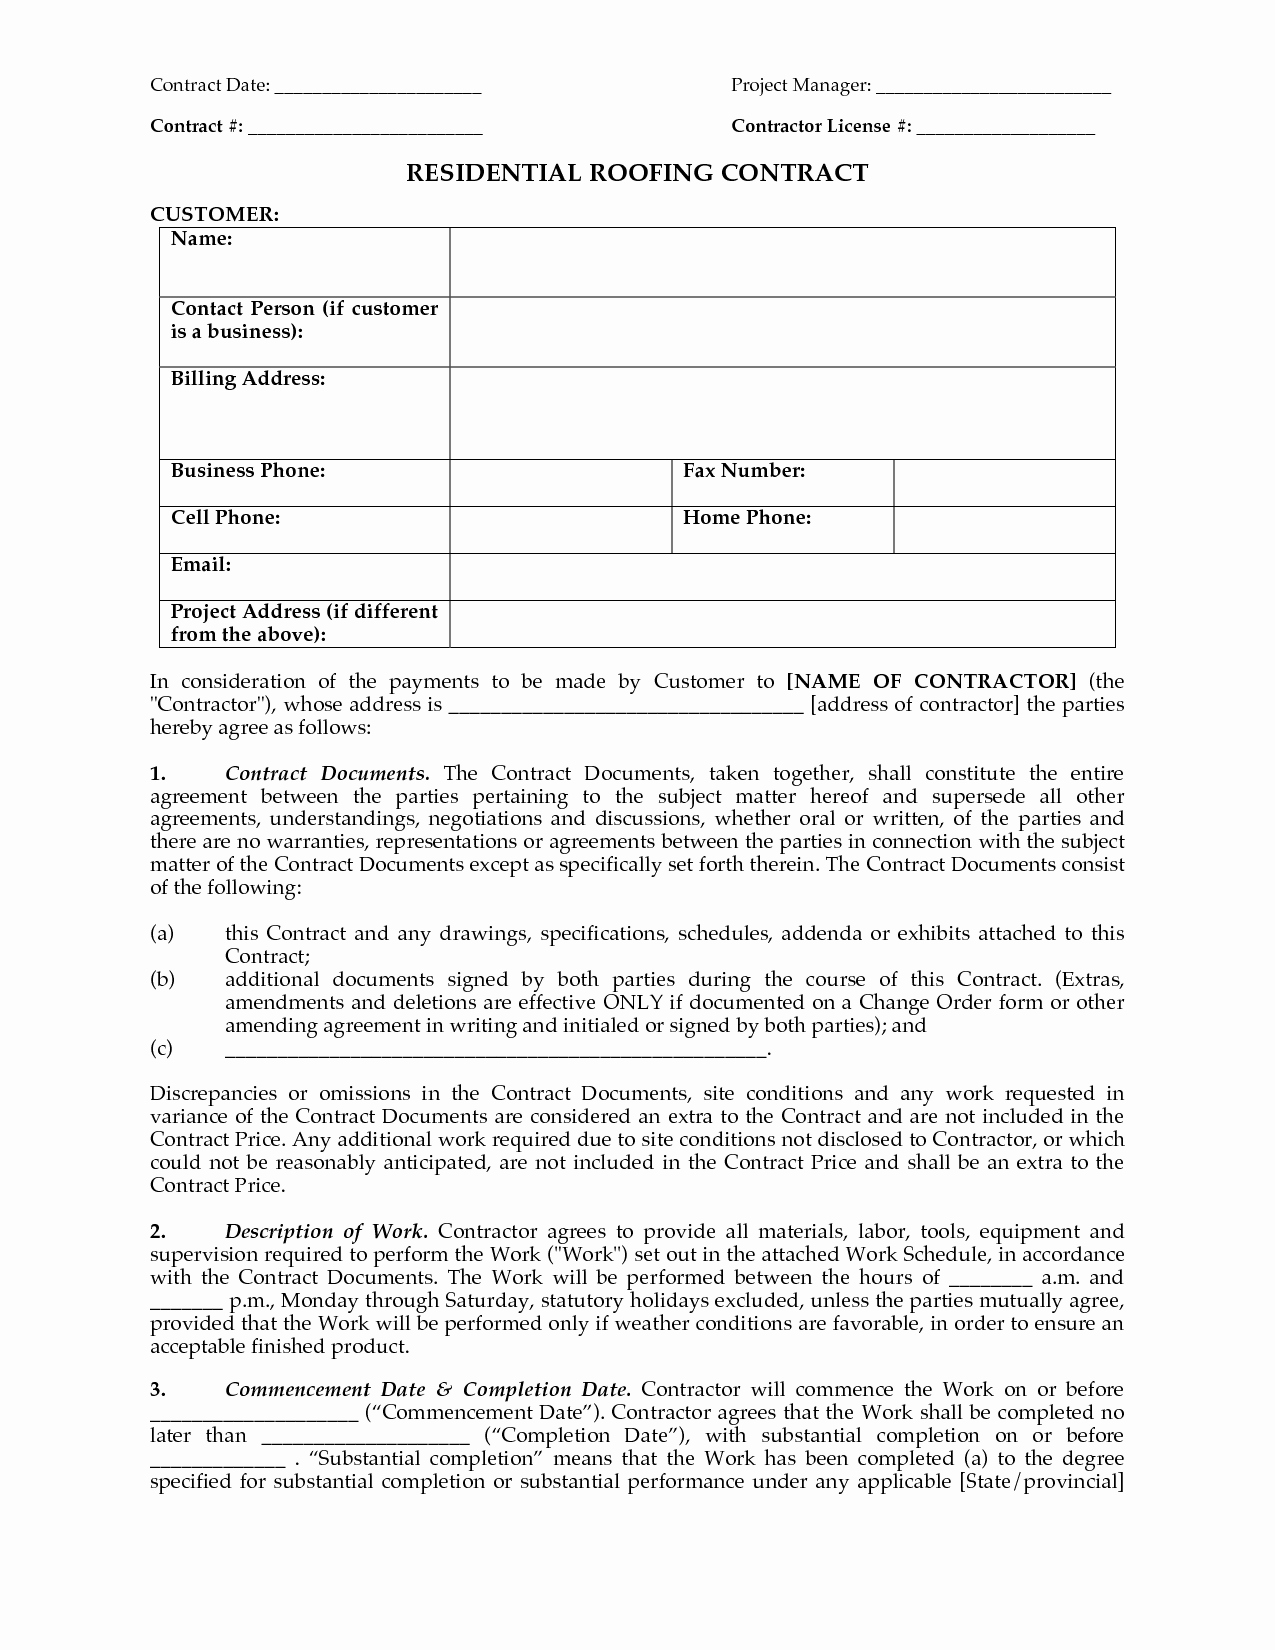 Project Management Contract Template Awesome Project Contract Template Portablegasgrillweber